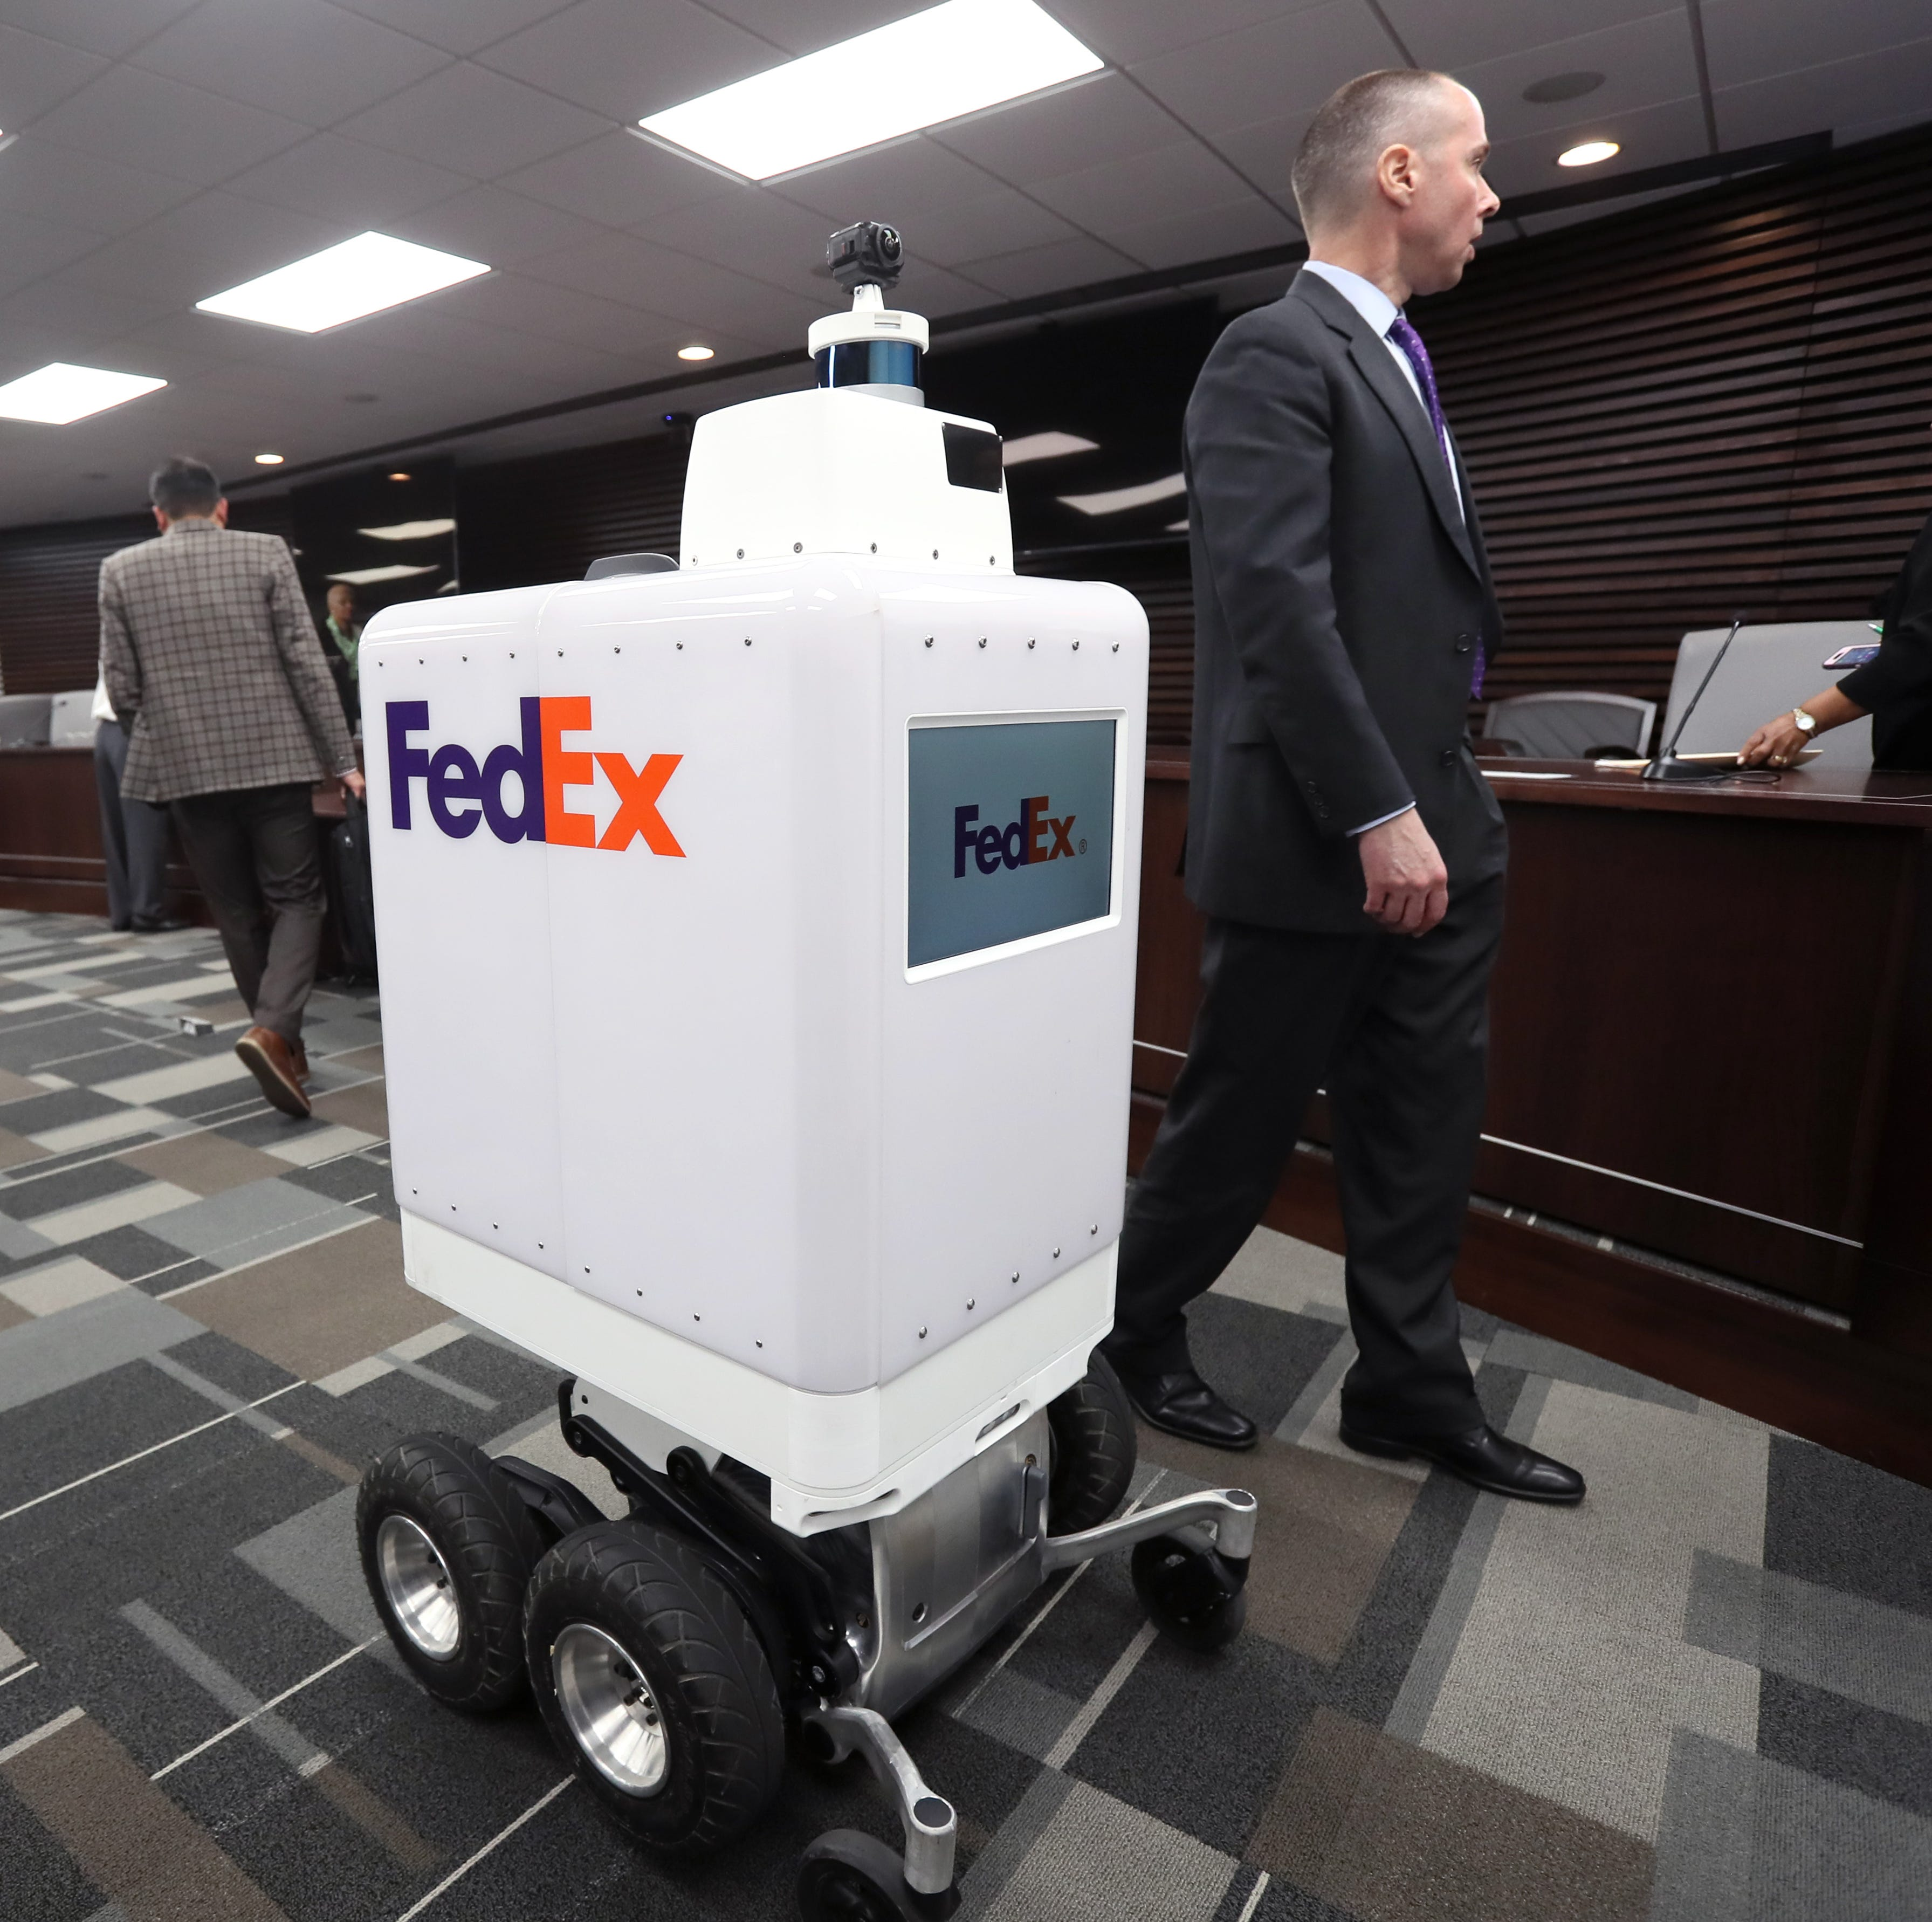 FedEx looks 'to work closely' with robotics companies through MassRobotics collaboration